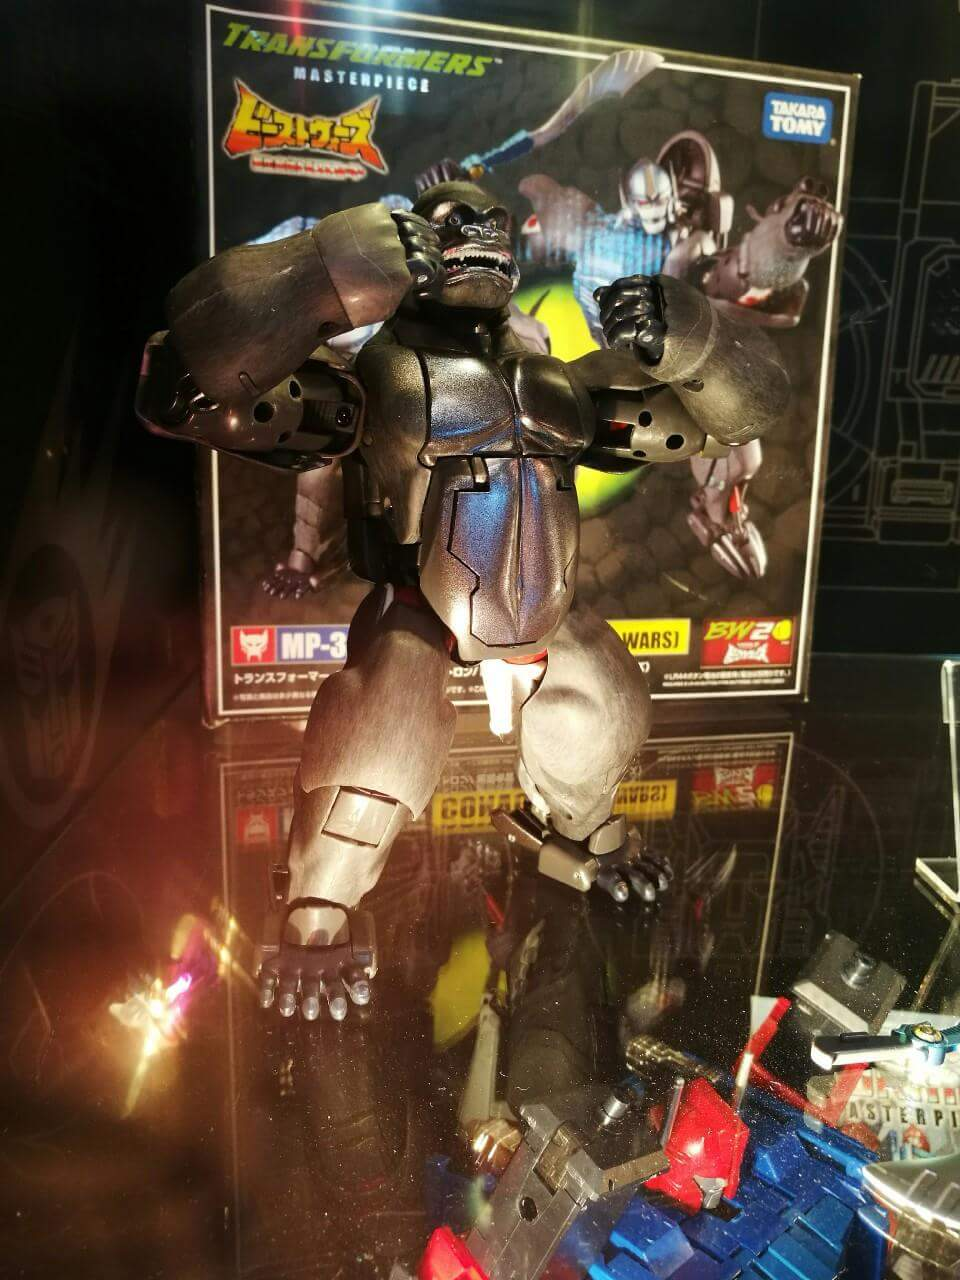 [Masterpiece] MP-32, MP-38 Optimus Primal et MP-38+ Burning Convoy (Beast Wars) - Page 3 SD8JeNgR